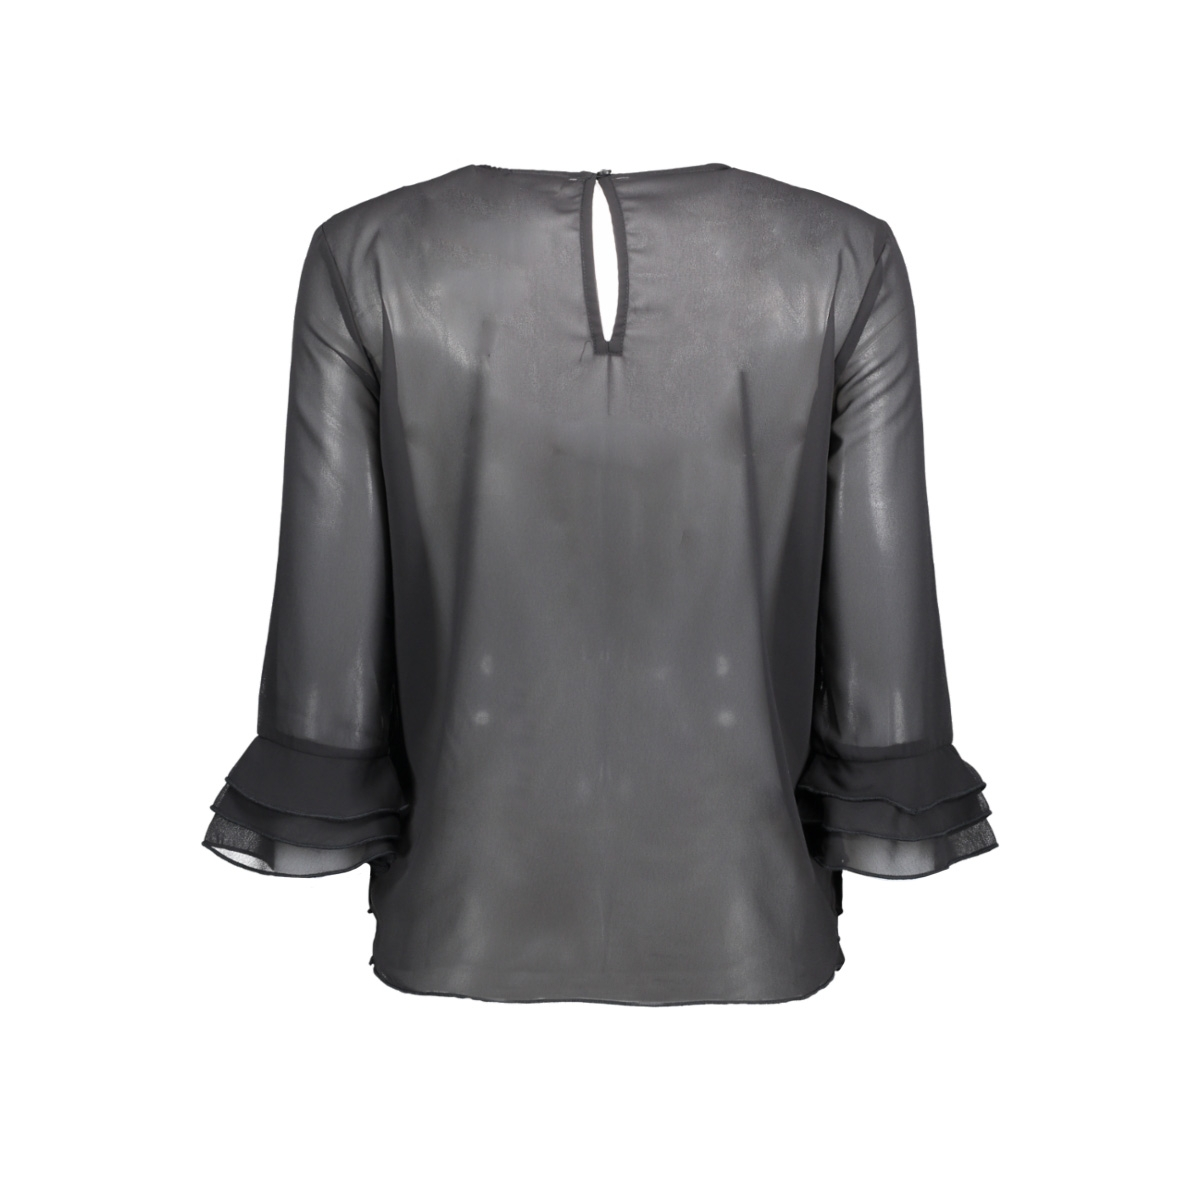 virichie 3/4 sleeve top/tb 14044221 vila blouse black